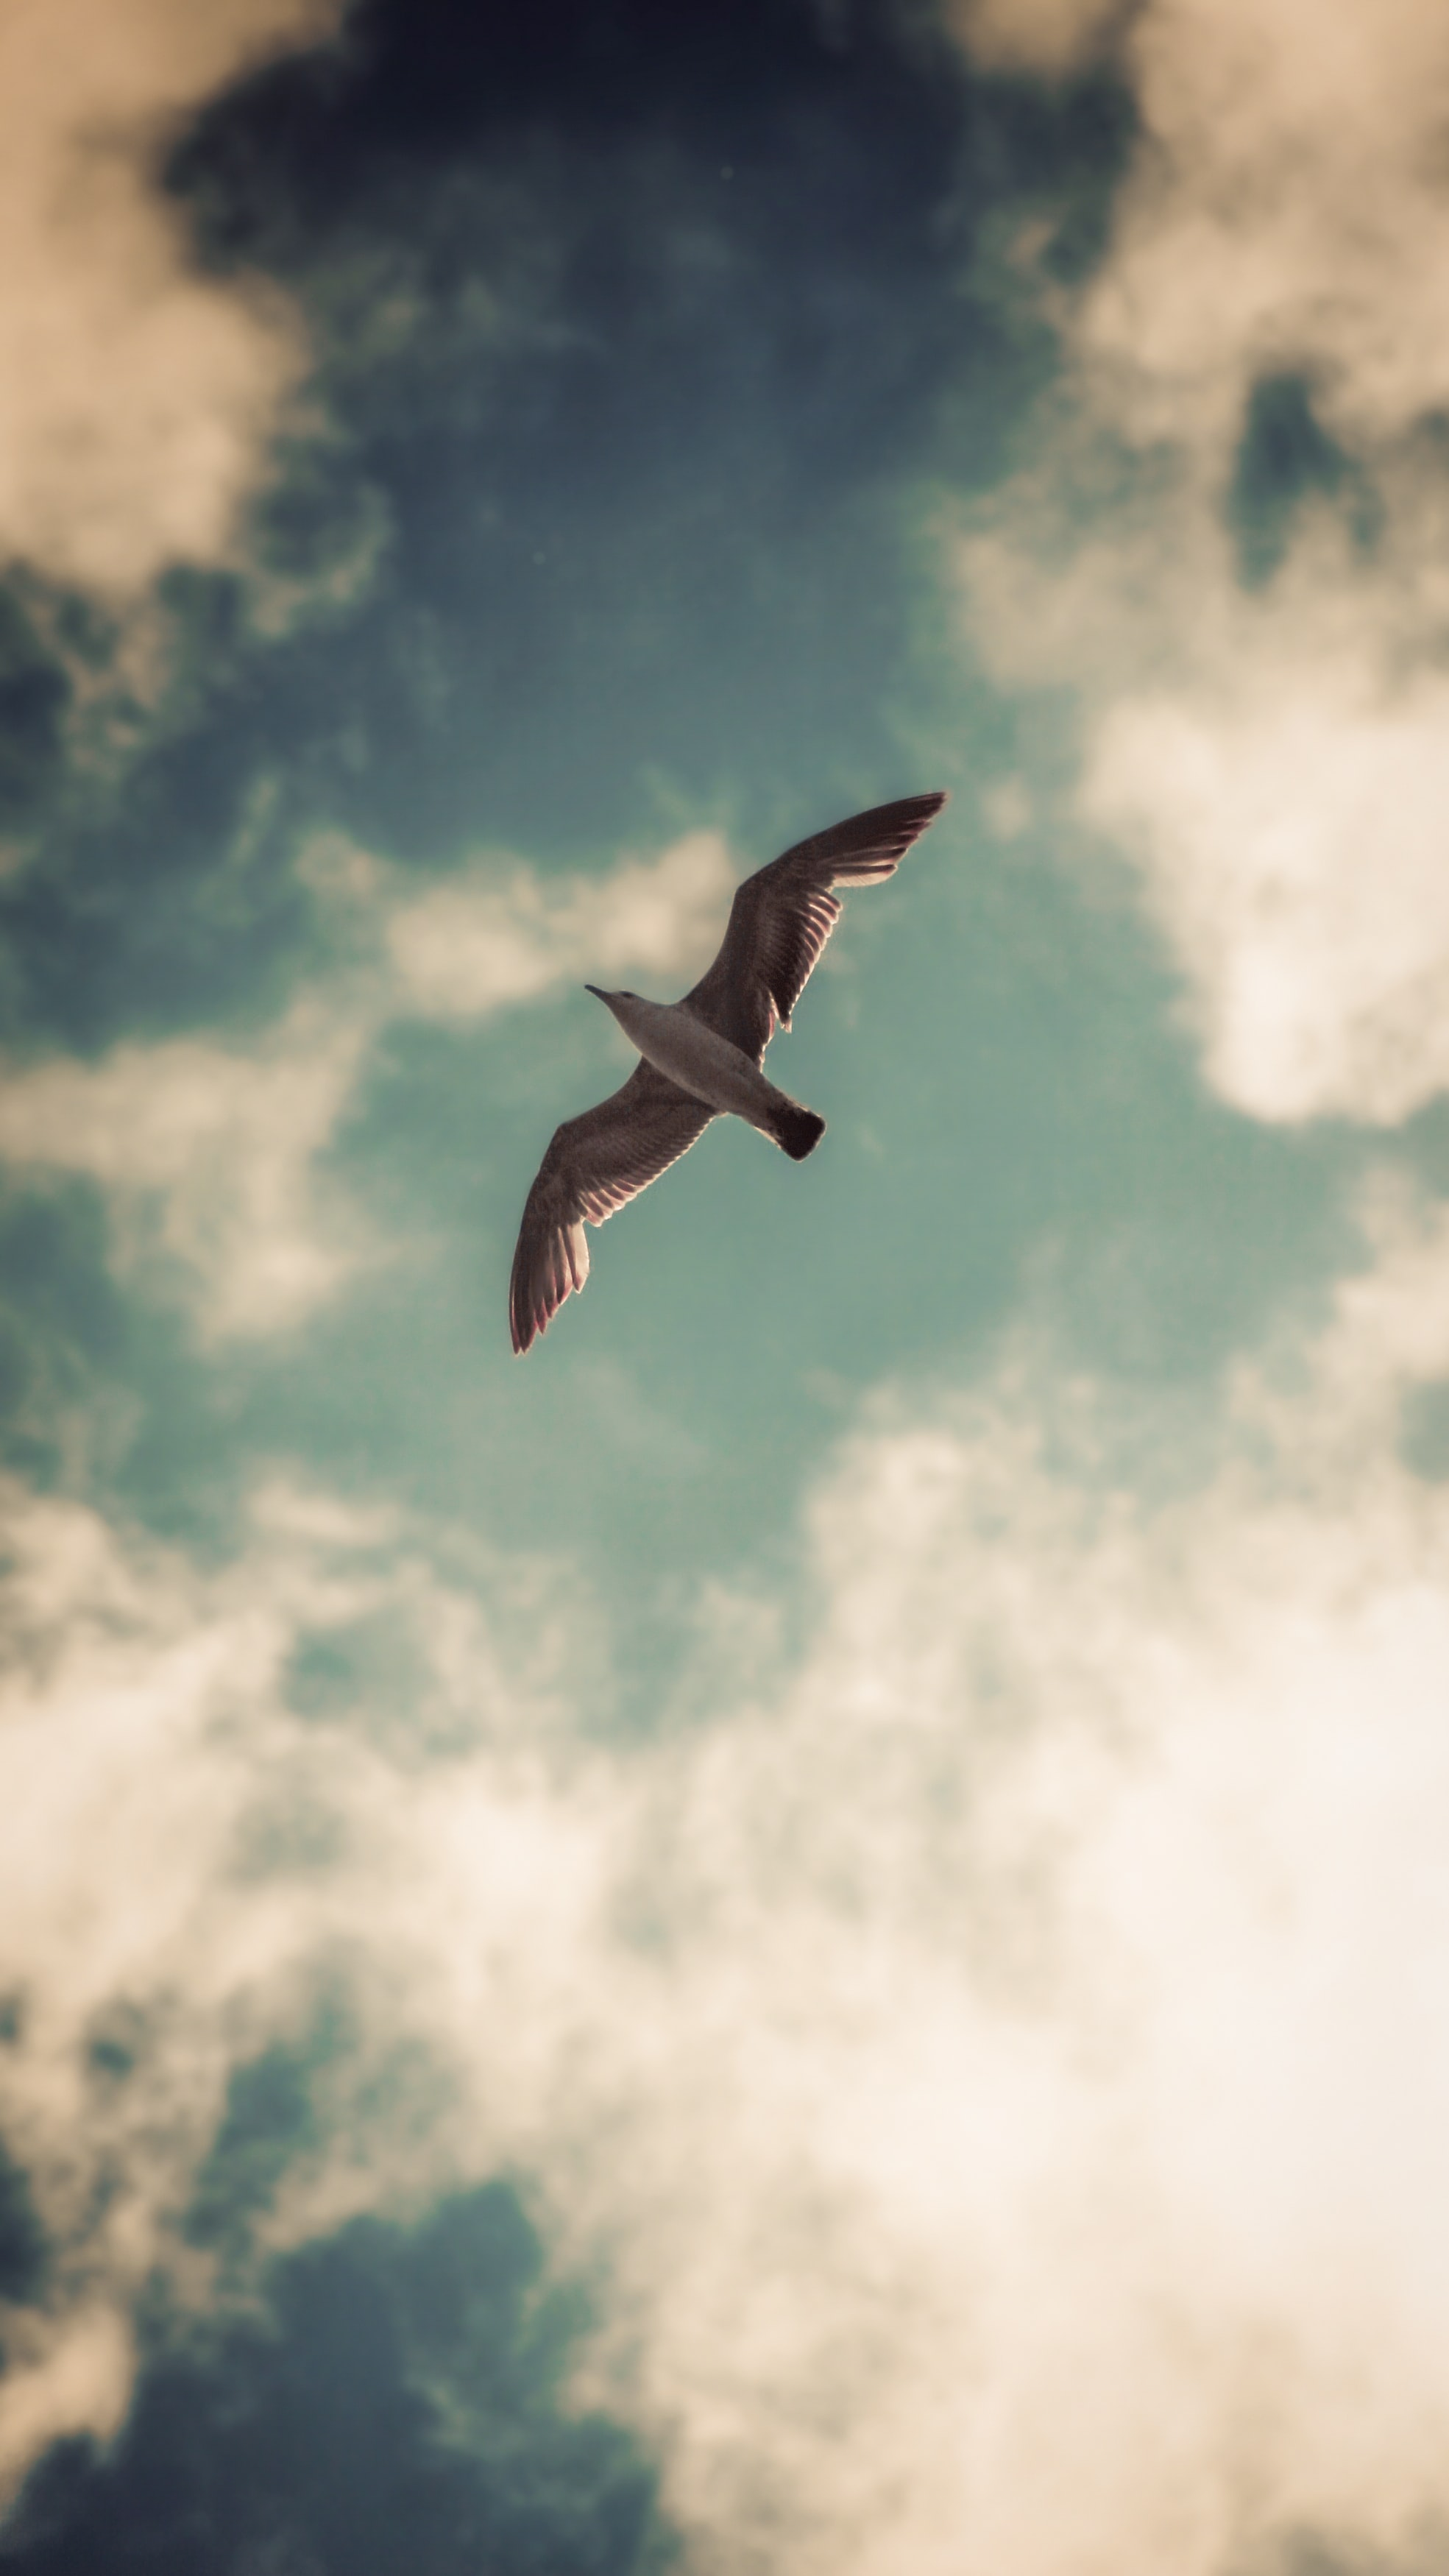 126374 download wallpaper Animals, Gull, Seagull, Bird, Wings, Sky, Clouds screensavers and pictures for free